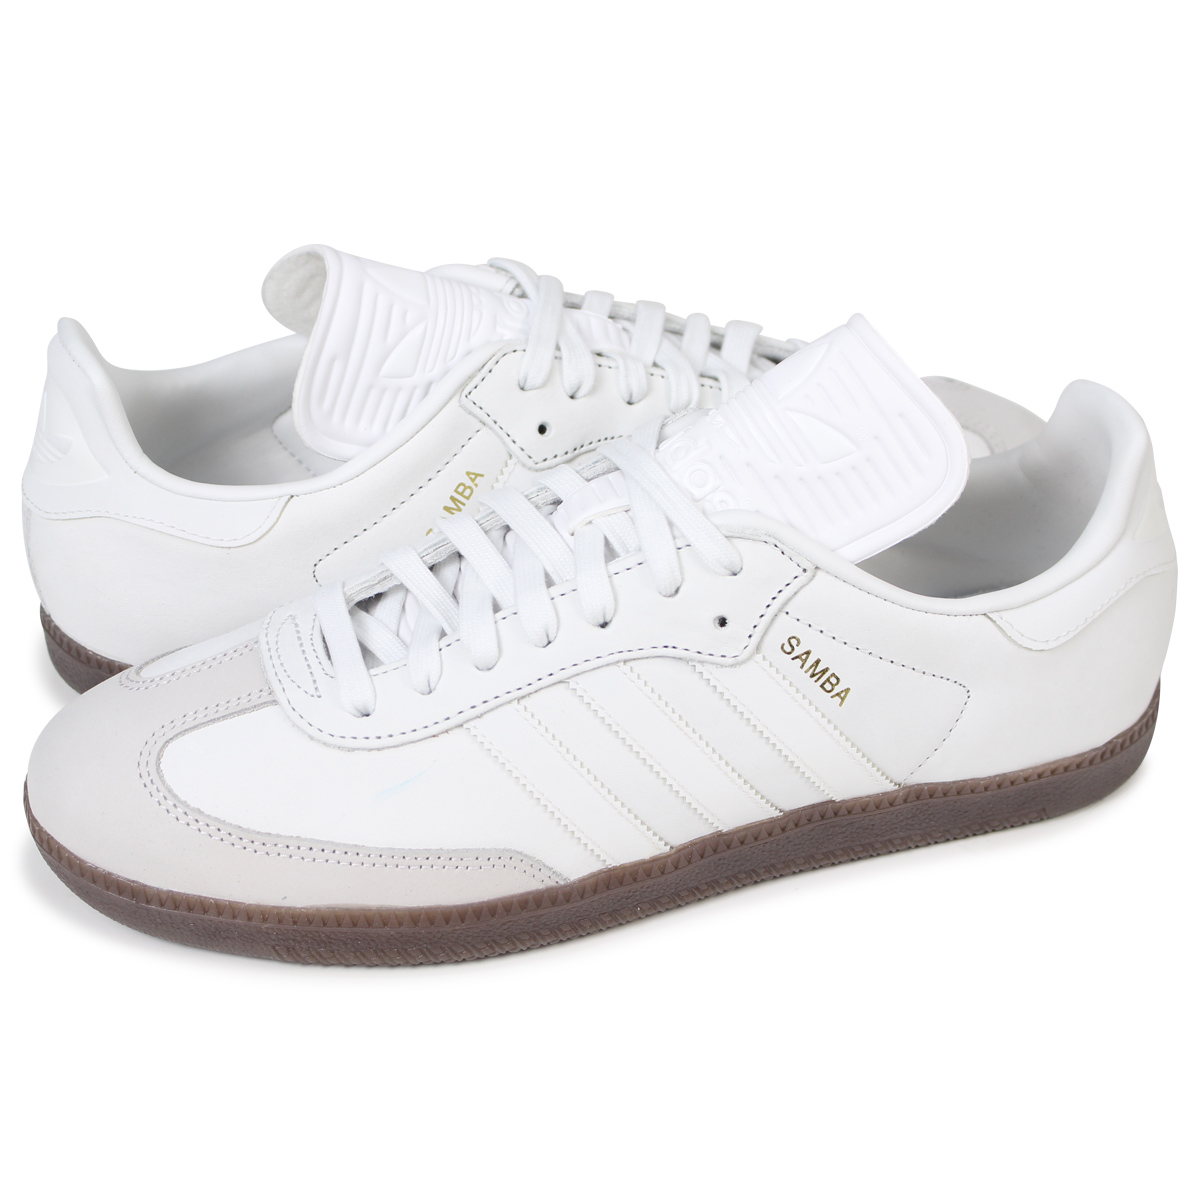 adidas Originals SAMBA CLASSIC OG Adidas samba sneakers men BZ0226 white  originals  load planned Shinnyu load in reservation product 3 20 containing  b07eec132